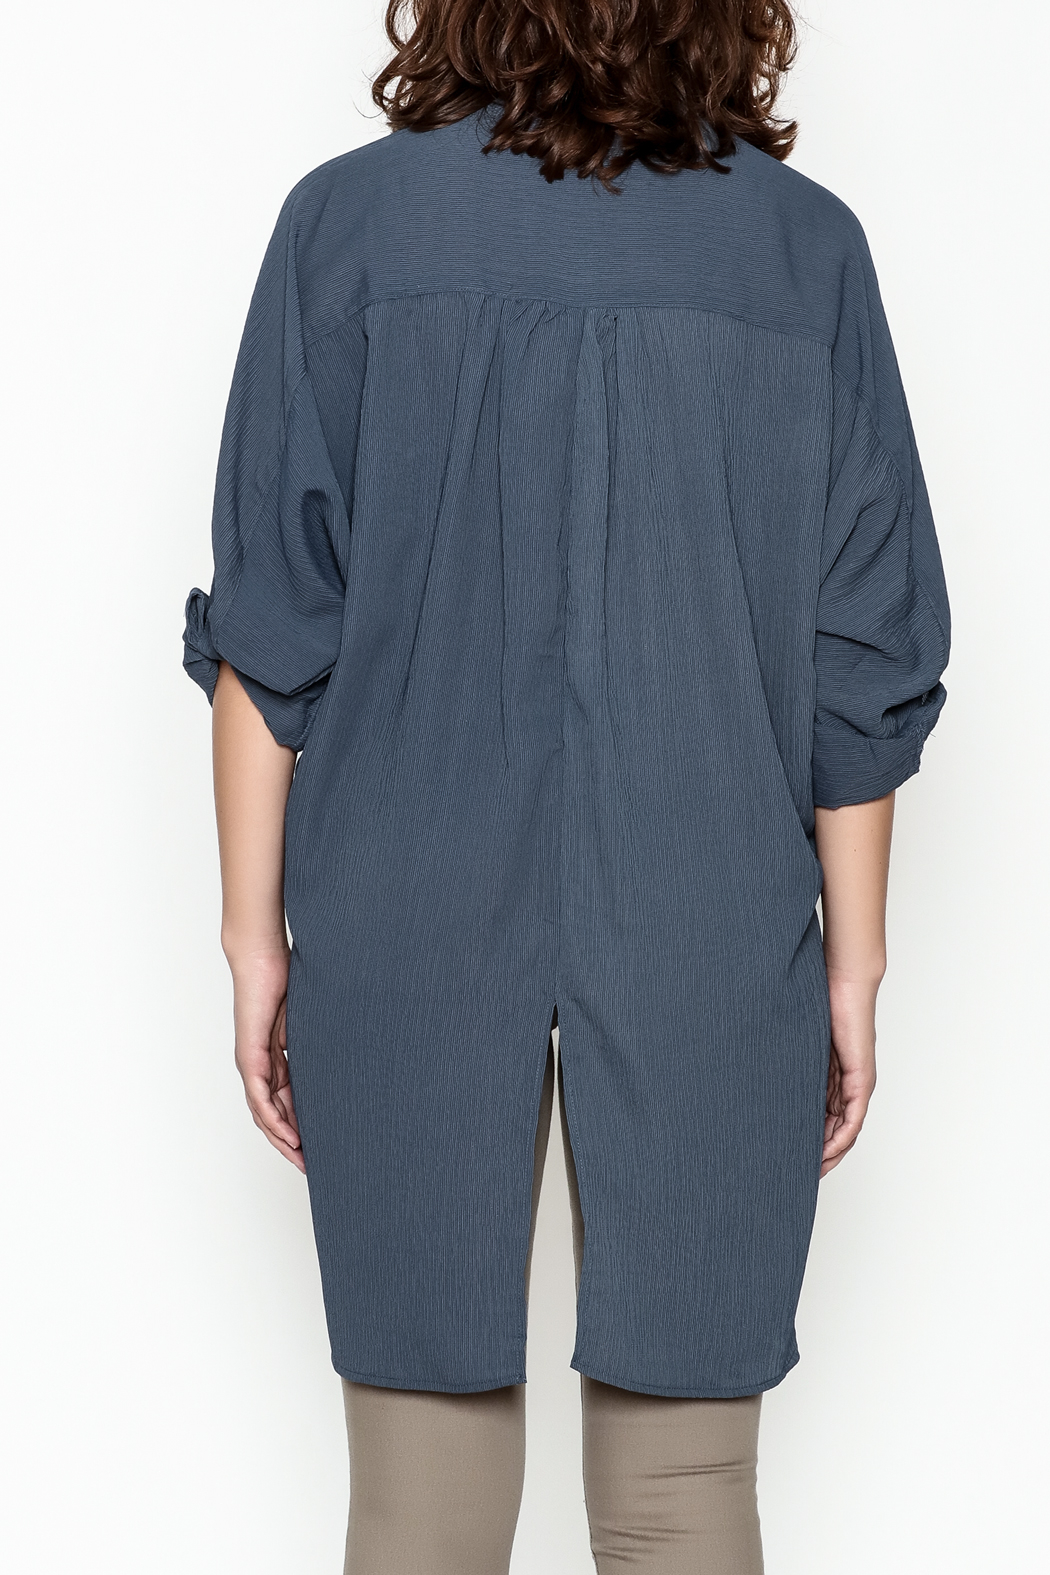 Umgee USA Navy Tie Blouse - Back Cropped Image